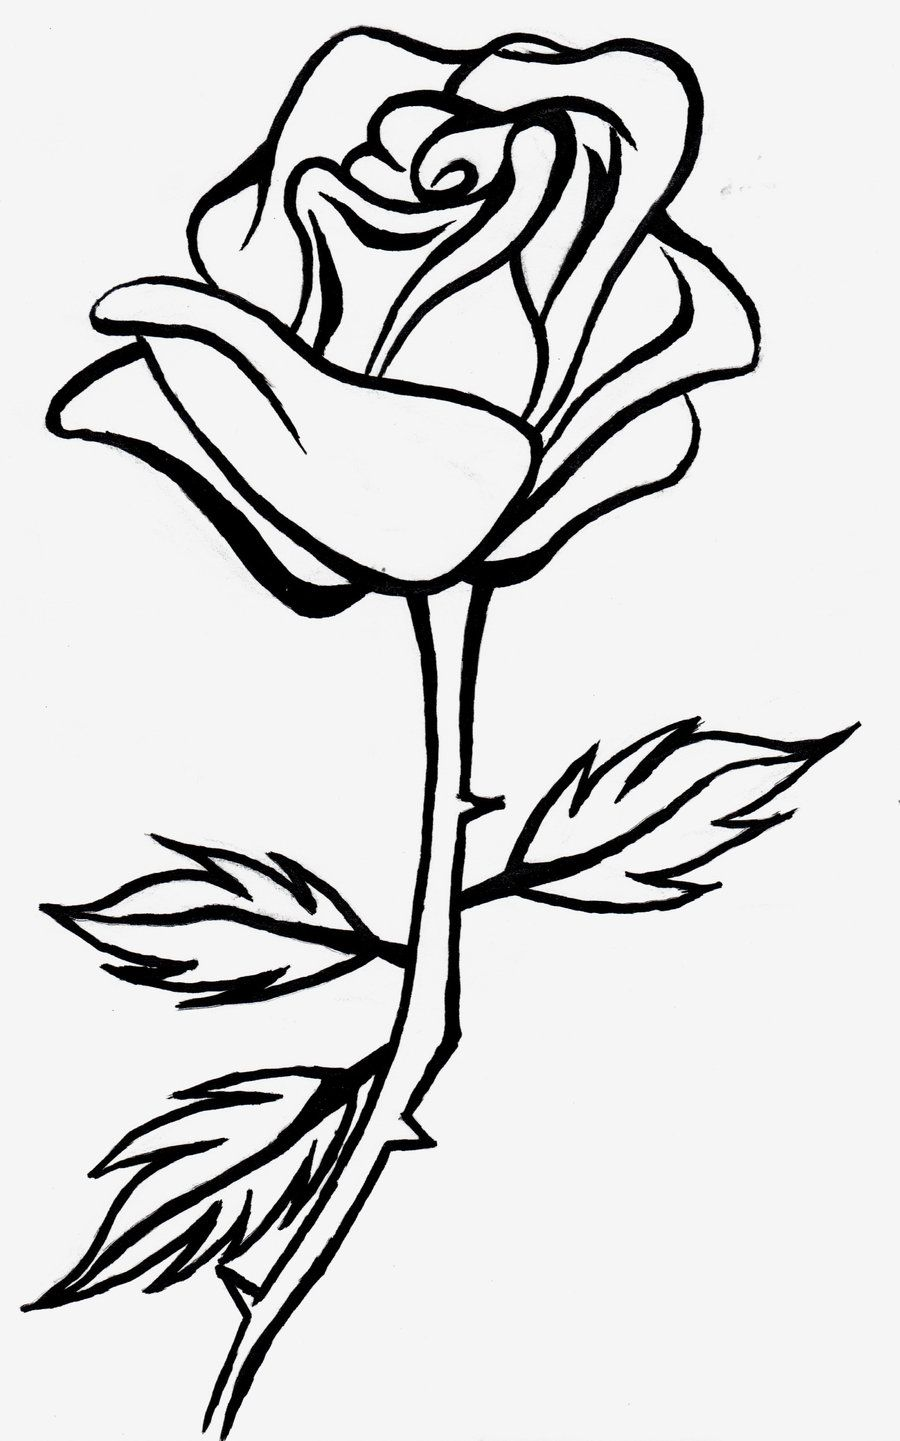 999 Flower Clipart Black And White Free Download Cloud Clipart Roses Drawing Drawings Clipart Black And White